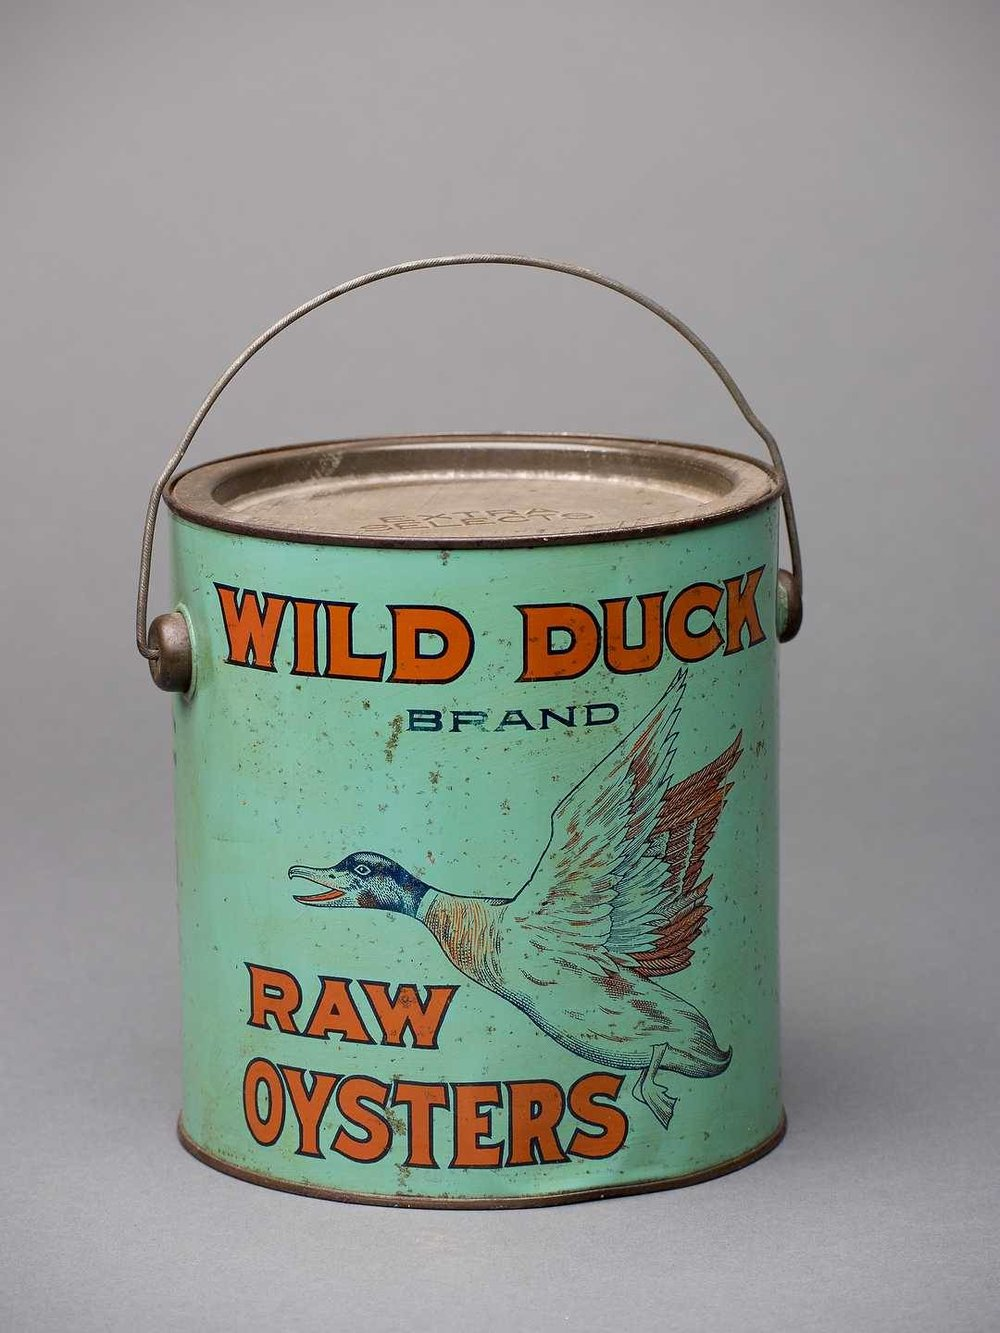 "In the late 19th century, the Chesapeake produced more oysters than any other region in the world. The oyster-packing industry was centered in Baltimore, and Roy E. Roberts was just one among scores of oyster packers in the city. To individualize their brands among such stiff competition, packers used distinctive names and imagery for their products to make them memorable to the consumer. Although Robert would later market most of his oysters under the ""Maryland Beauty"" brand, he briefly used the ""Wild Duck"" brand- making it among the rarest, most valuable, and most collectible oyster cans in the world.     R.E. Roberts, Inc., ""Wild Duck Brand Raw Oysters,"" R.E. Roberts, Inc., c. 1920. Lithograph on tinplate, 18.4 x 17.1 cm. Museum purchase, 2002.40.69. Digital image by David W. Harp © Chesapeake Bay Maritime Museum."